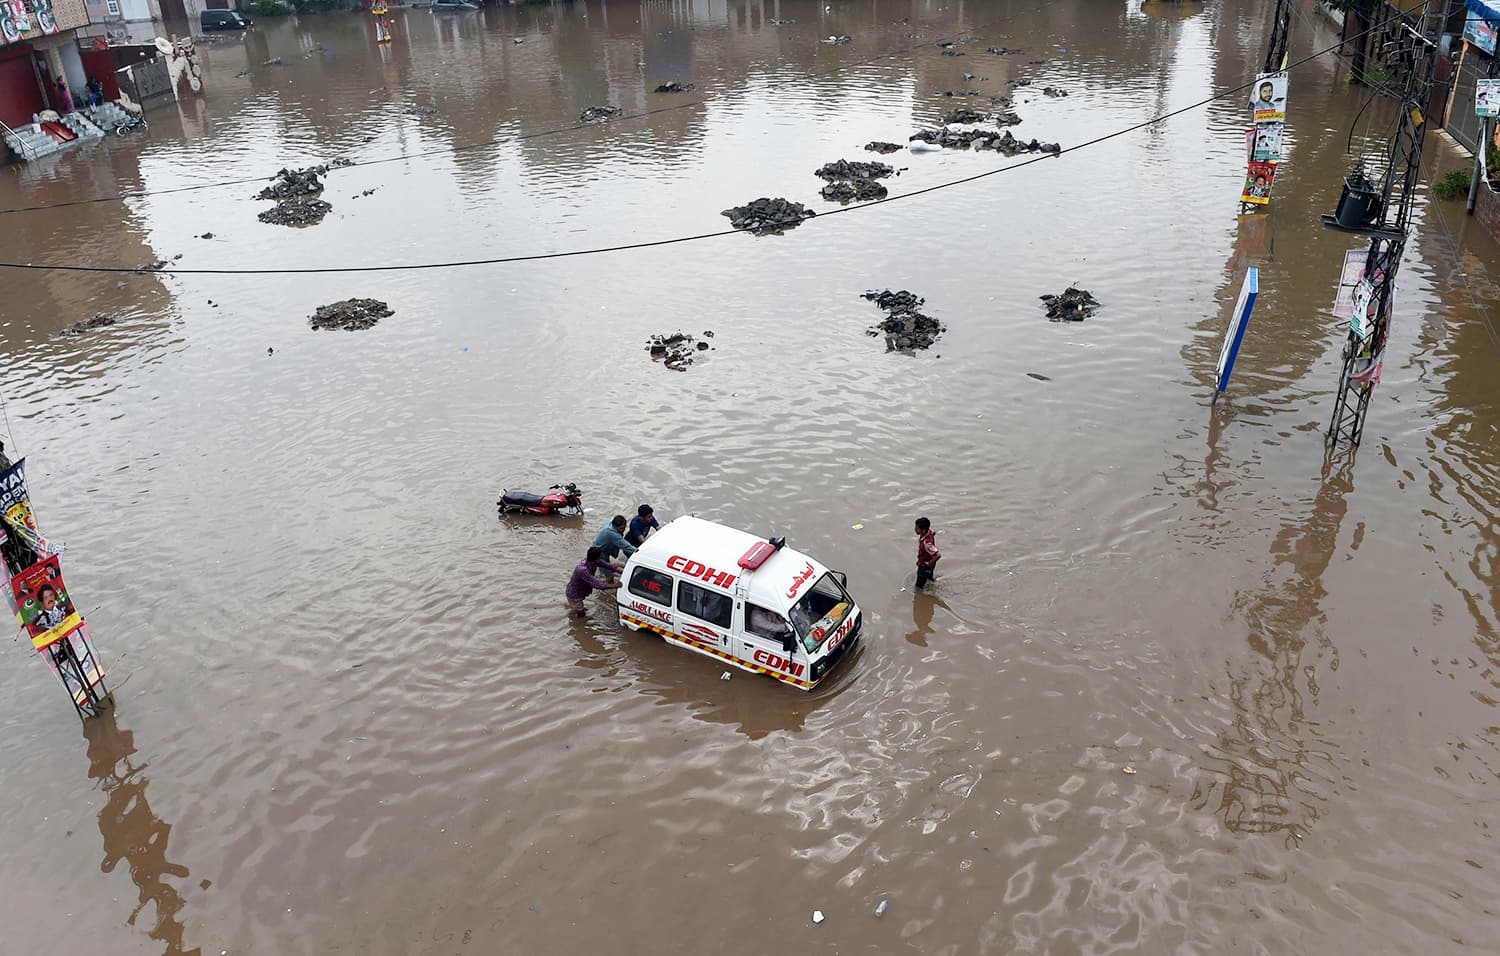 Men push an ambulance through a flooded square AFP